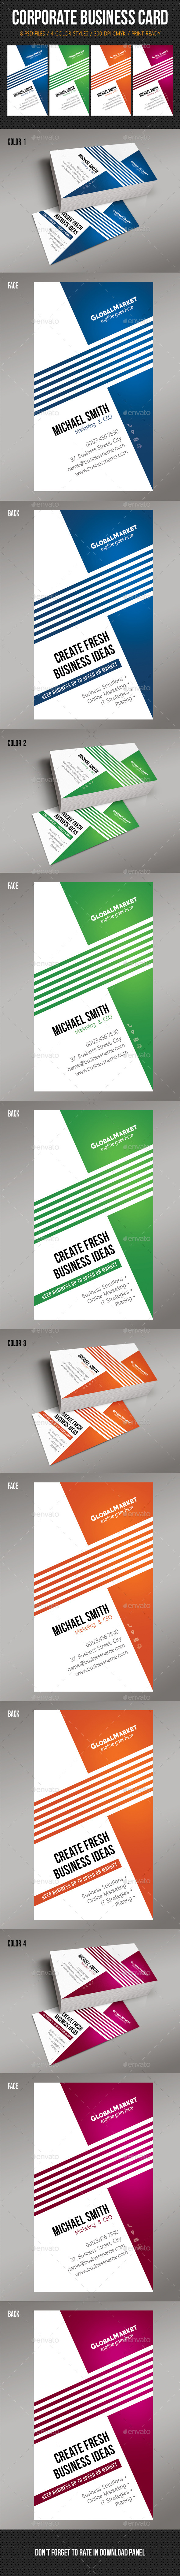 GraphicRiver Corporate Business Card 12 10703243